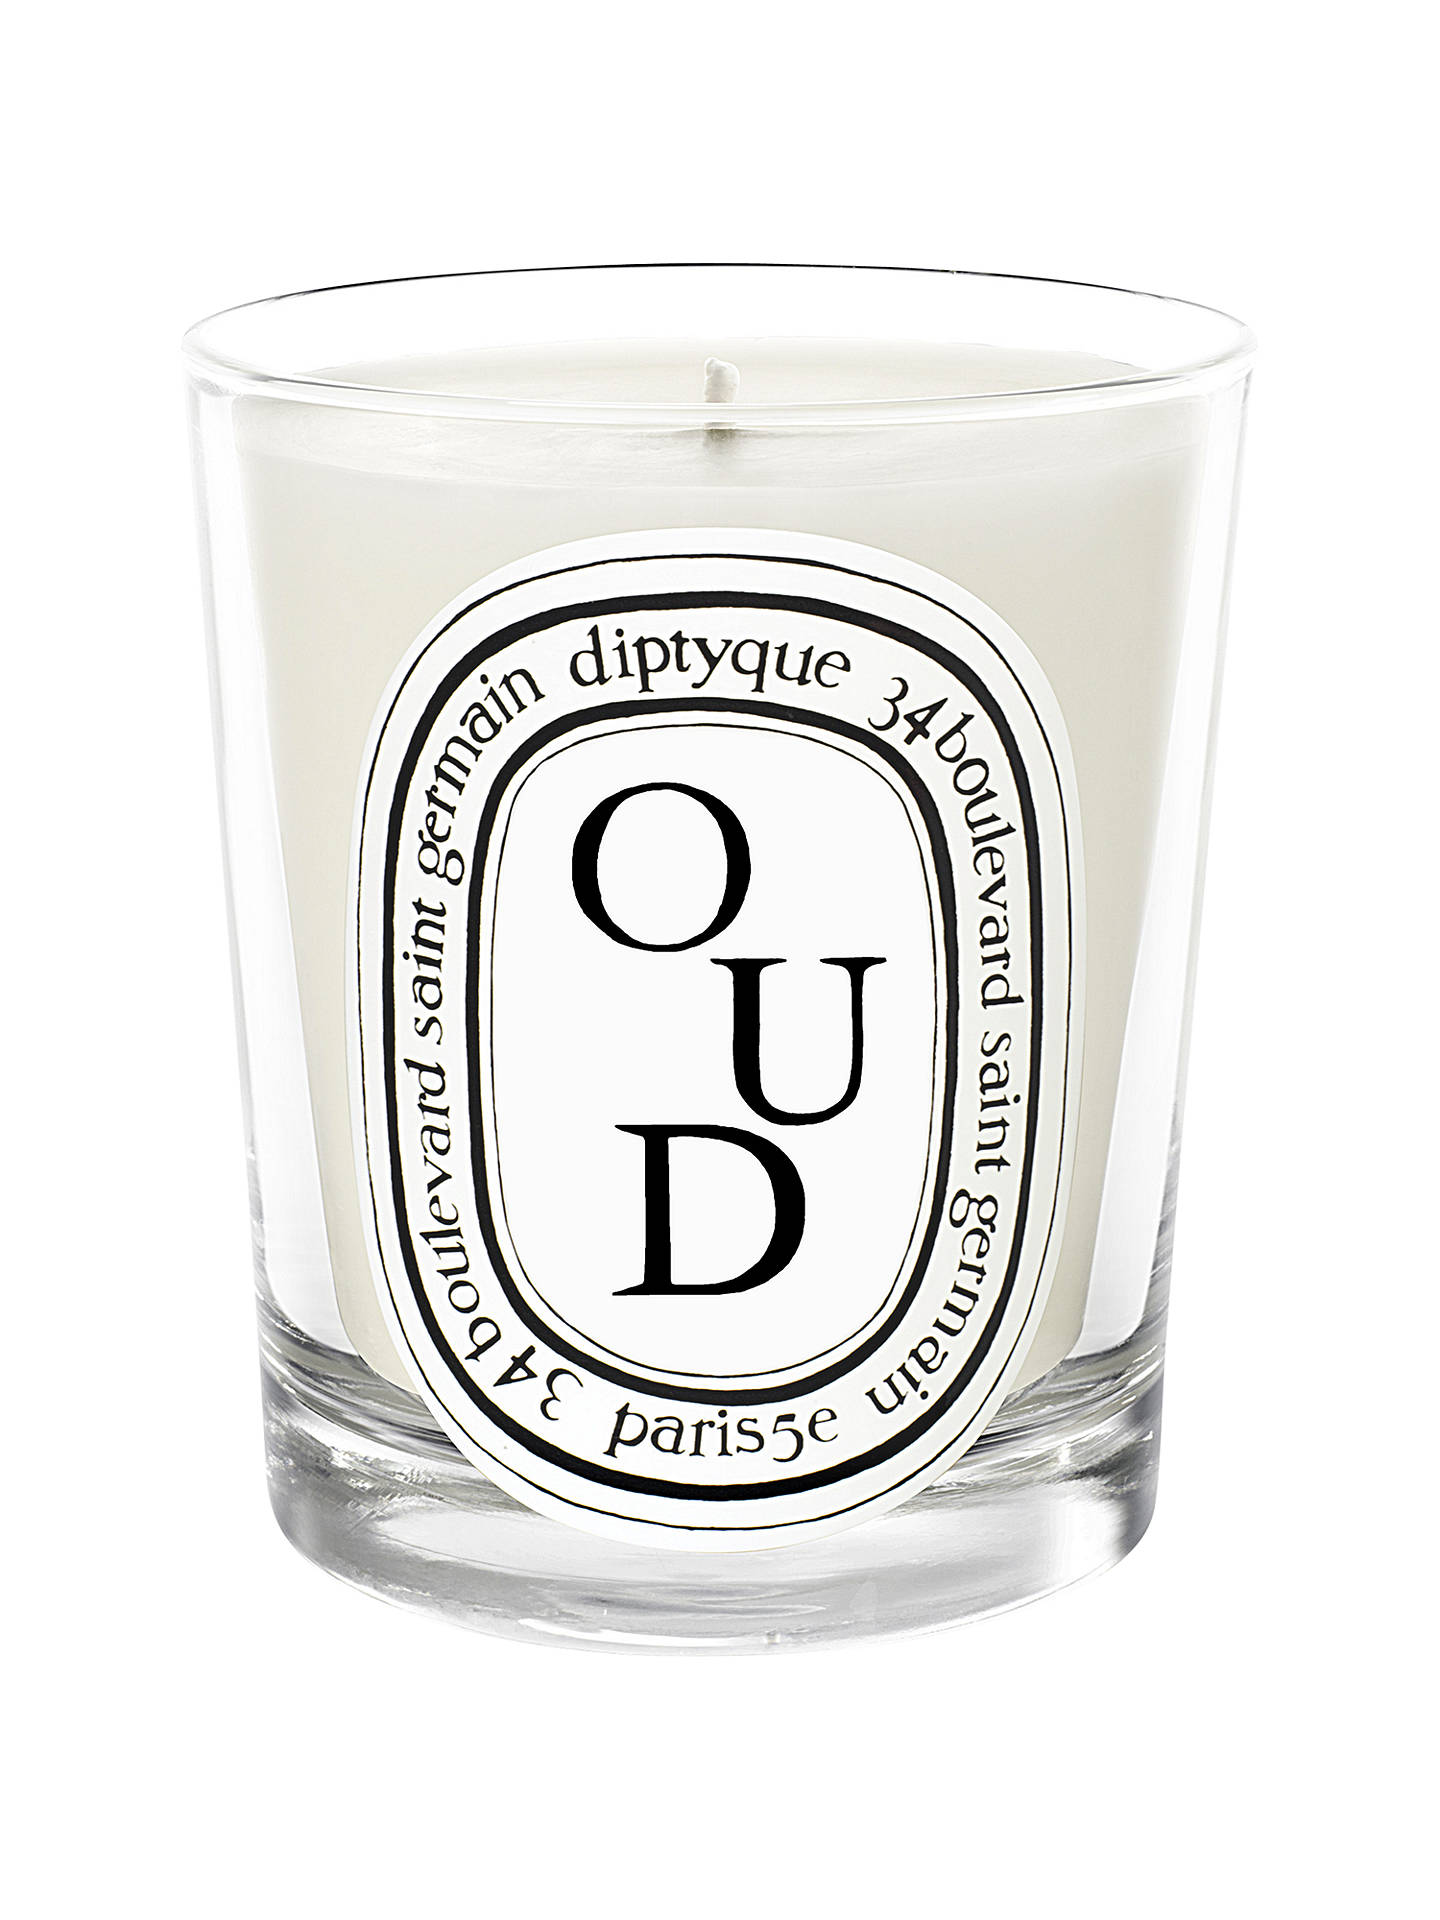 Diptyque Oud Scented Candle, 190g by Diptyque